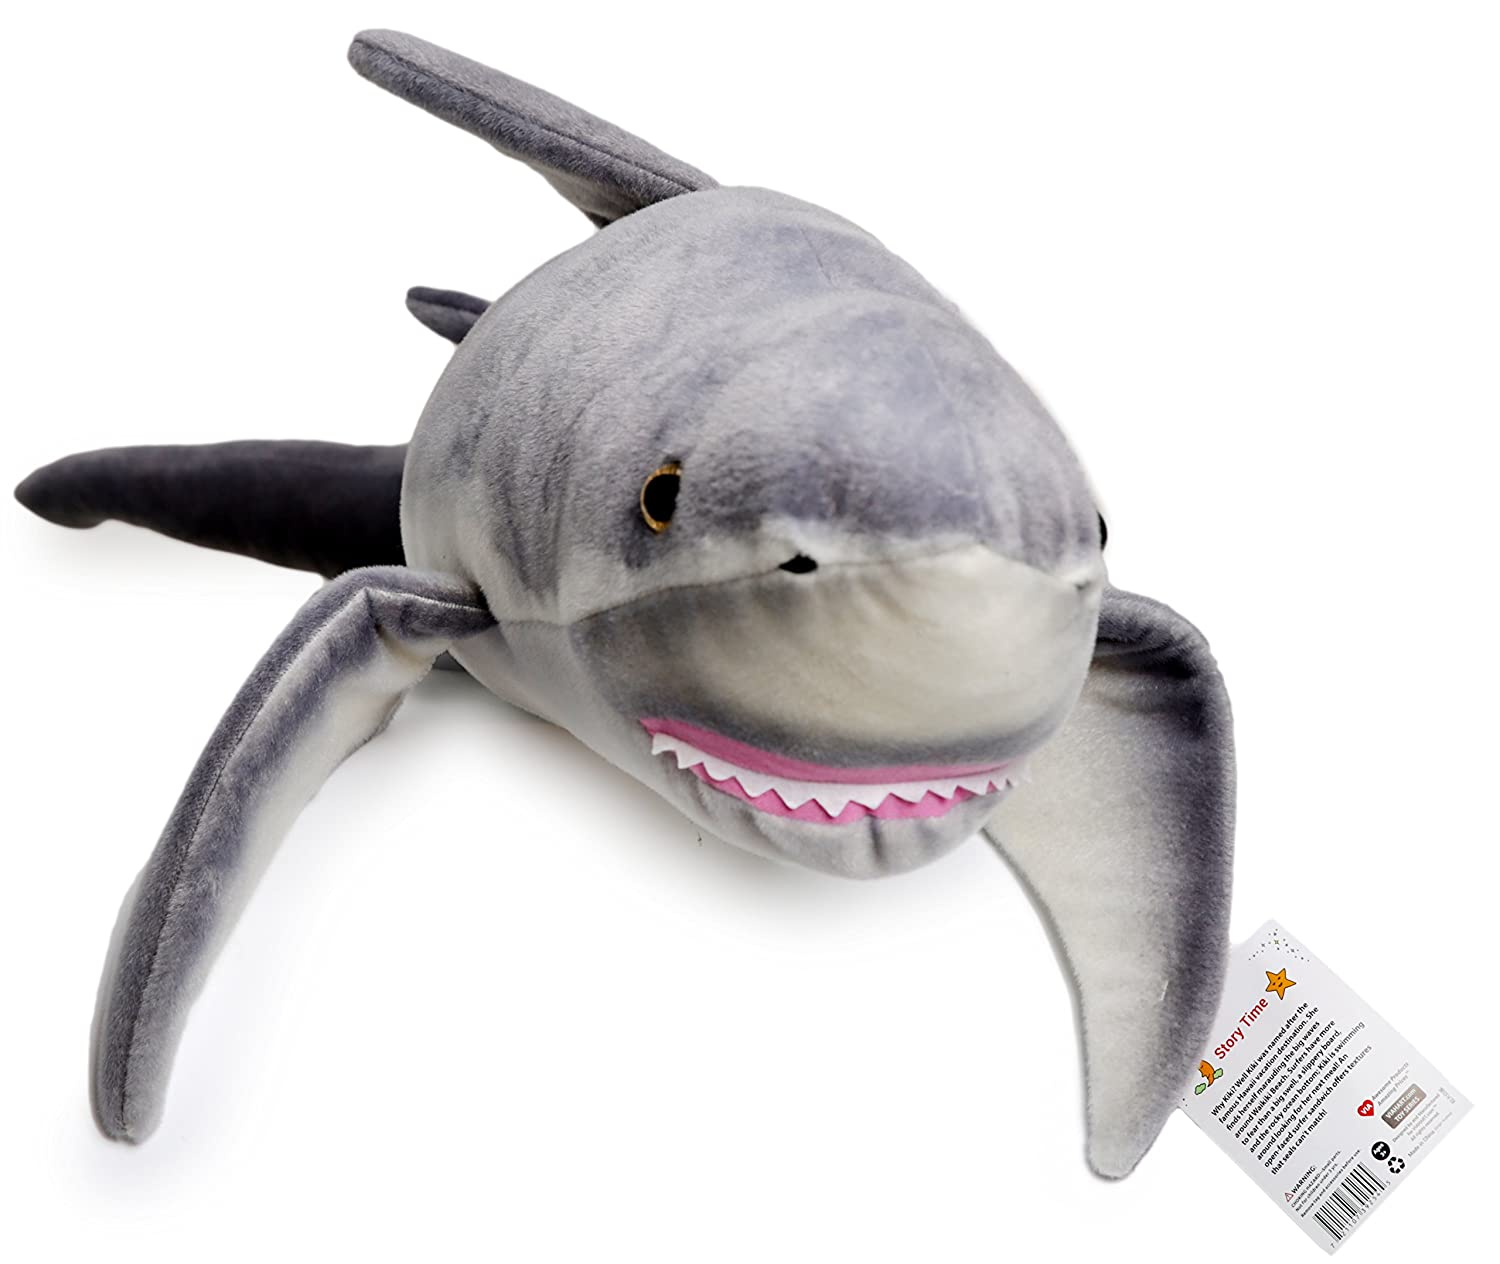 VIAHART Kiki The Great White Shark | 4 1/2 Foot Long Big Stuffed Animal Plush | Shipping from Texas | by Tiger Tale Toys